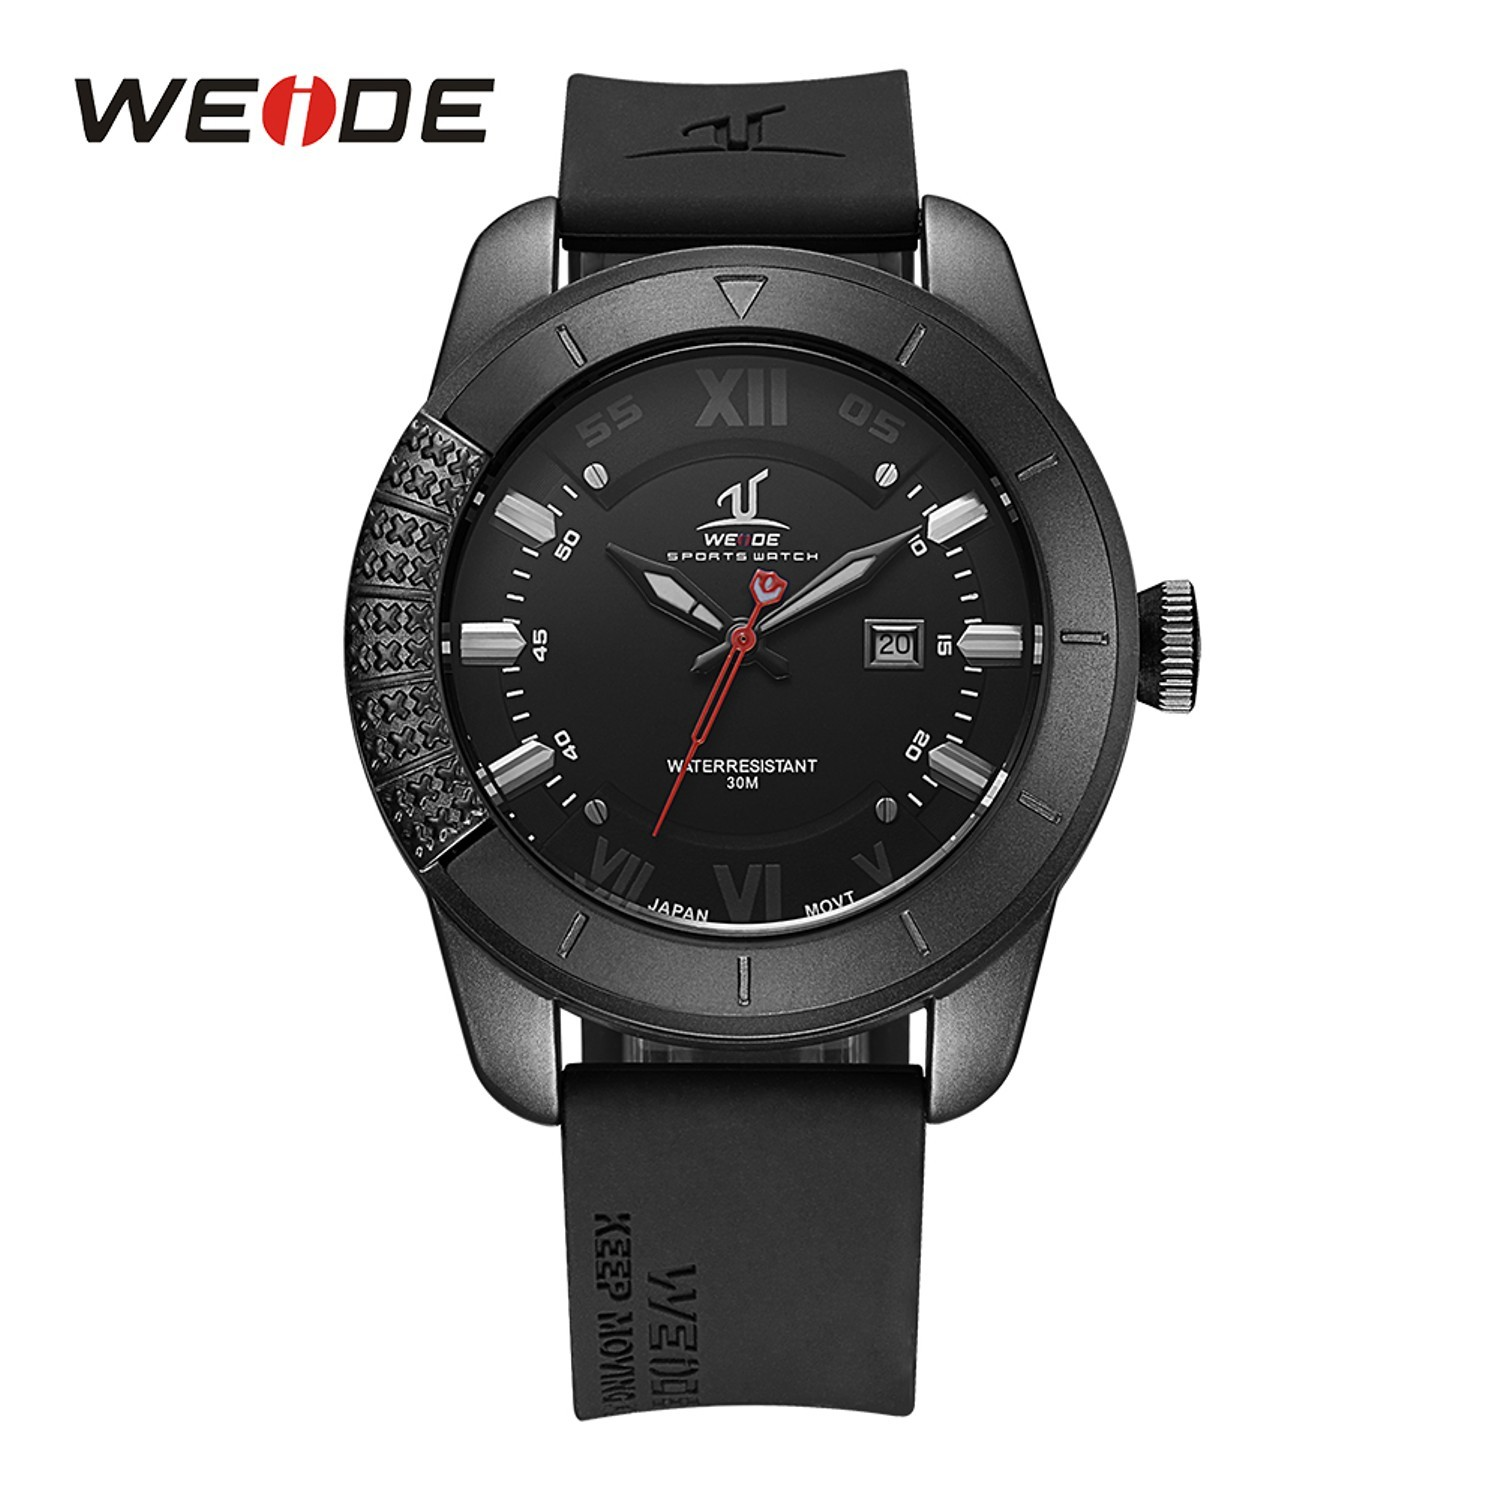 WEIDE-Mens-Sport-Fashion-Black-Dial-Analog-Display-Date-Calendar-Watches-Black-Dial-Rubber-Strap-Buckle_1500x1500_STRETCH_205.jpg